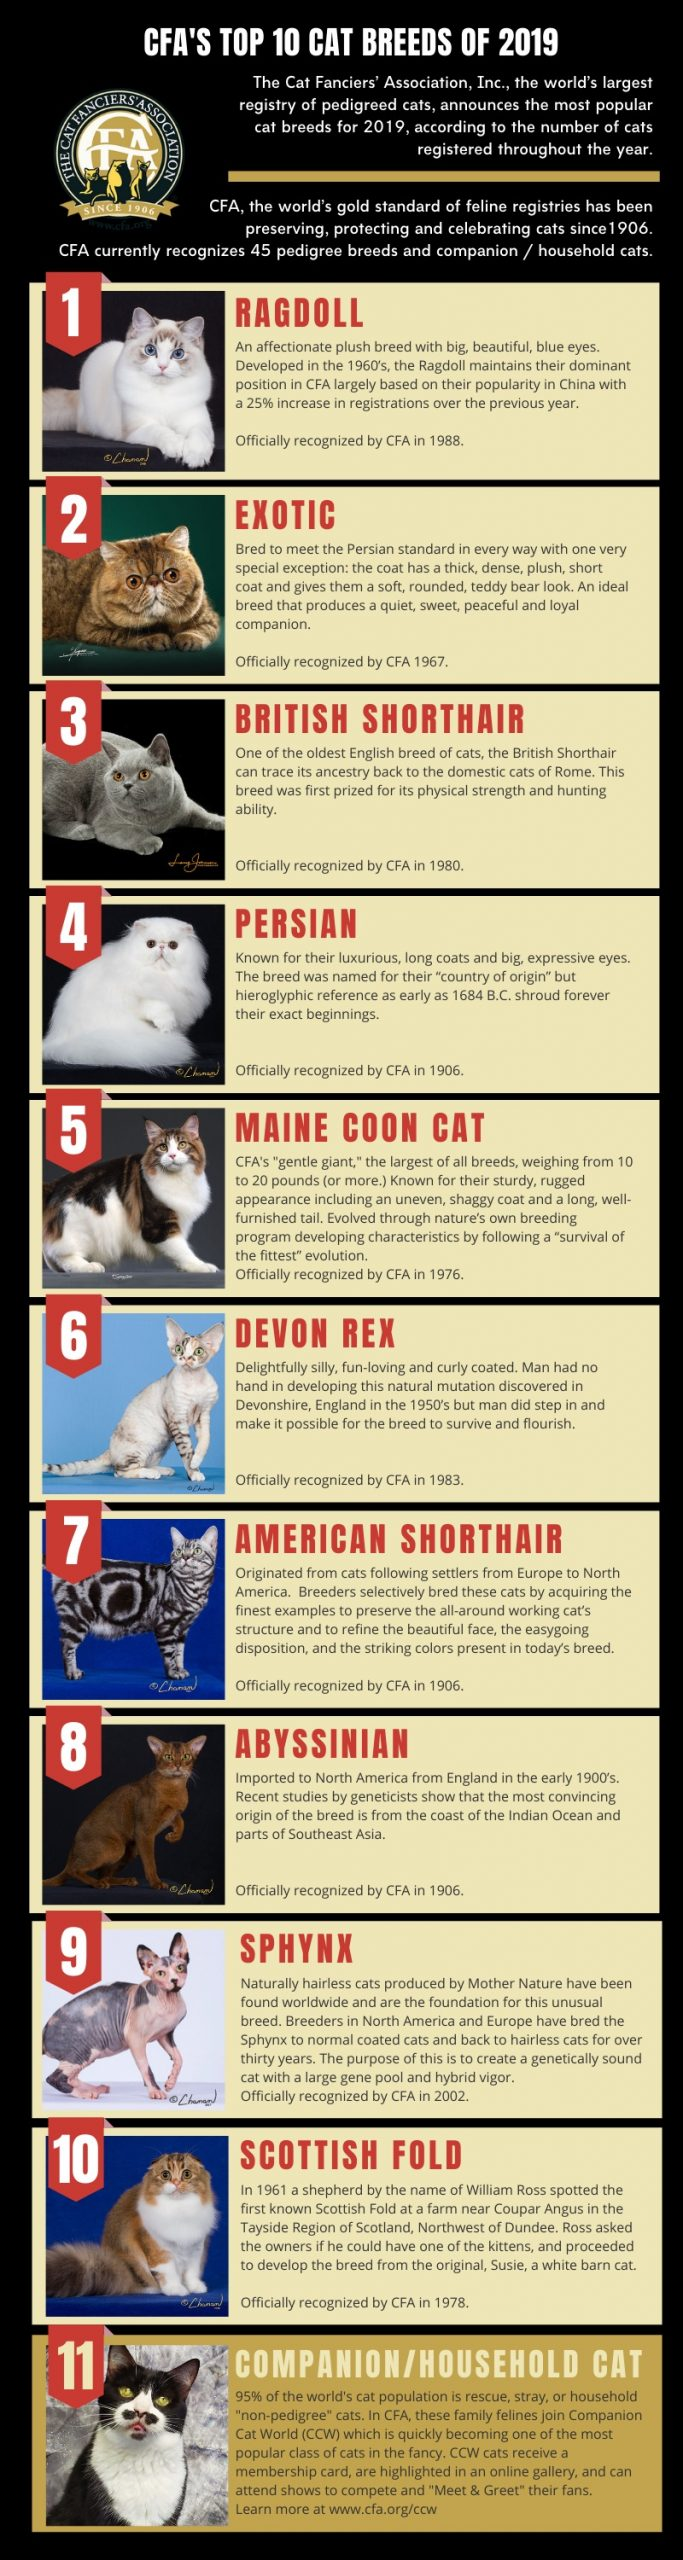 Top 10 cat breeds CFA for 2019